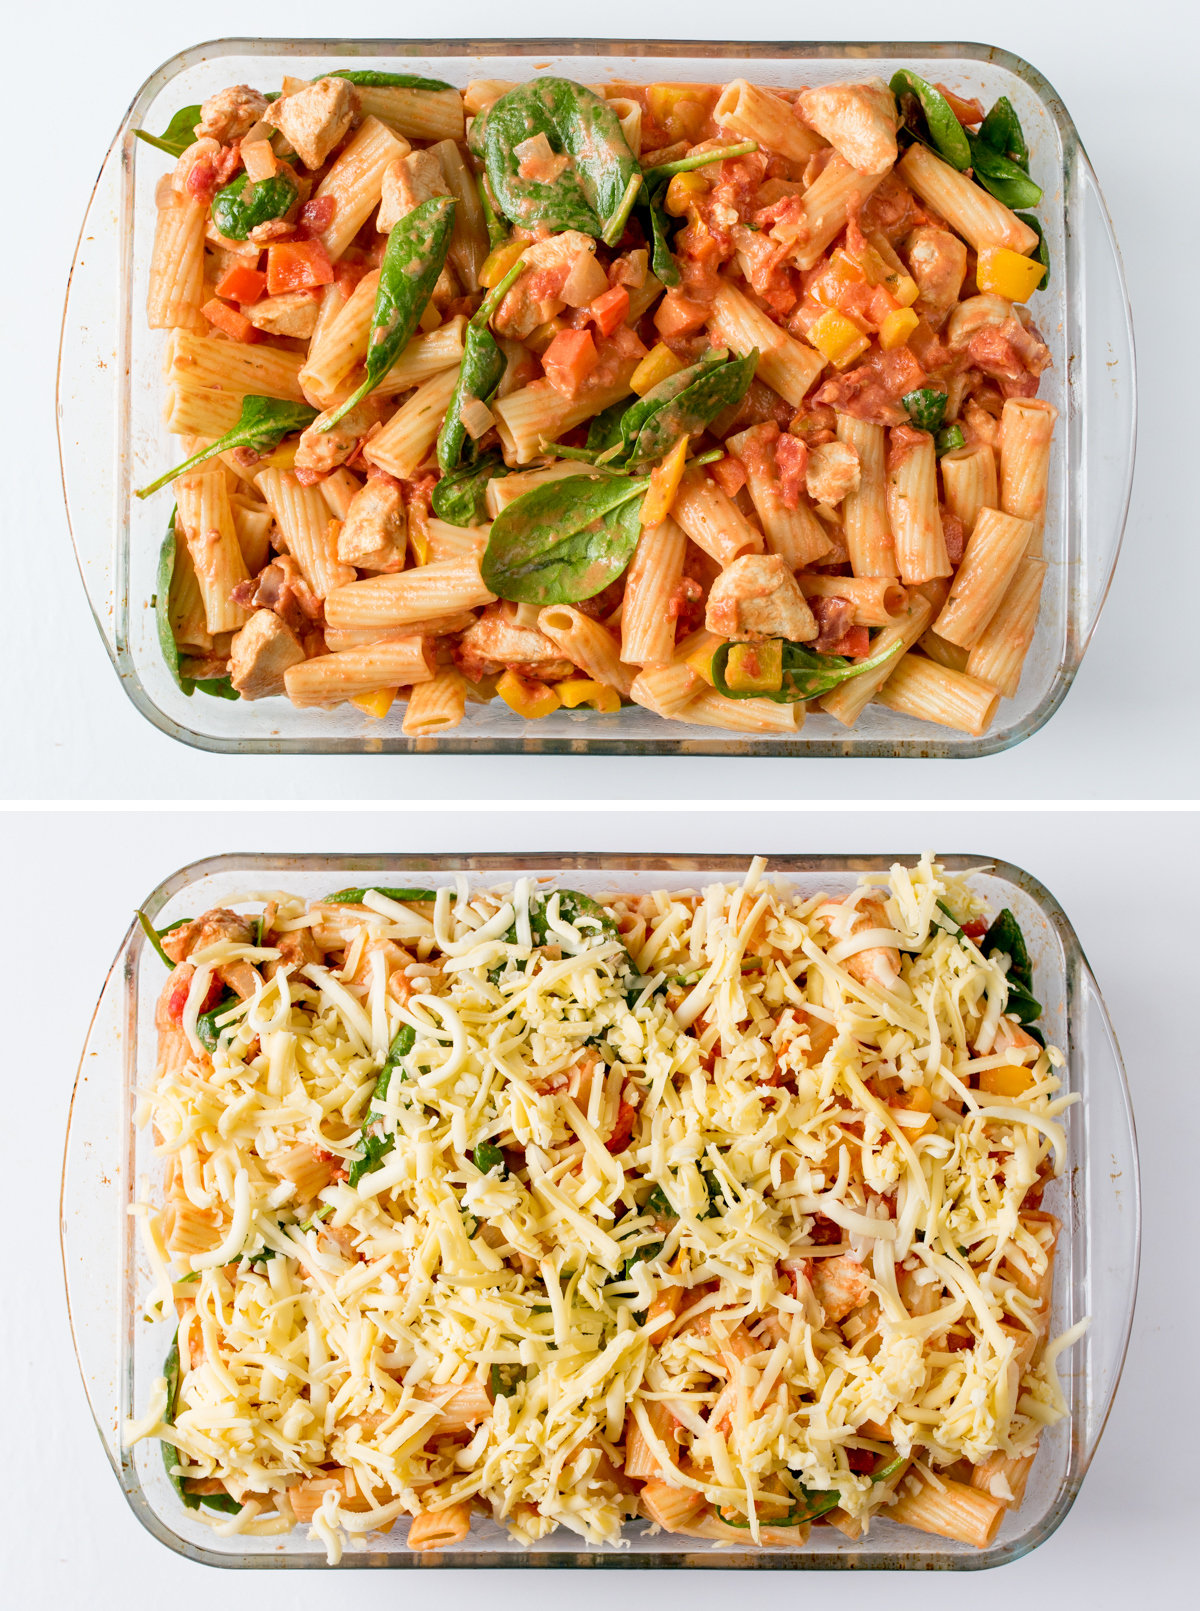 Chicken bacon spinach cheesy pasta bake step 4 collage